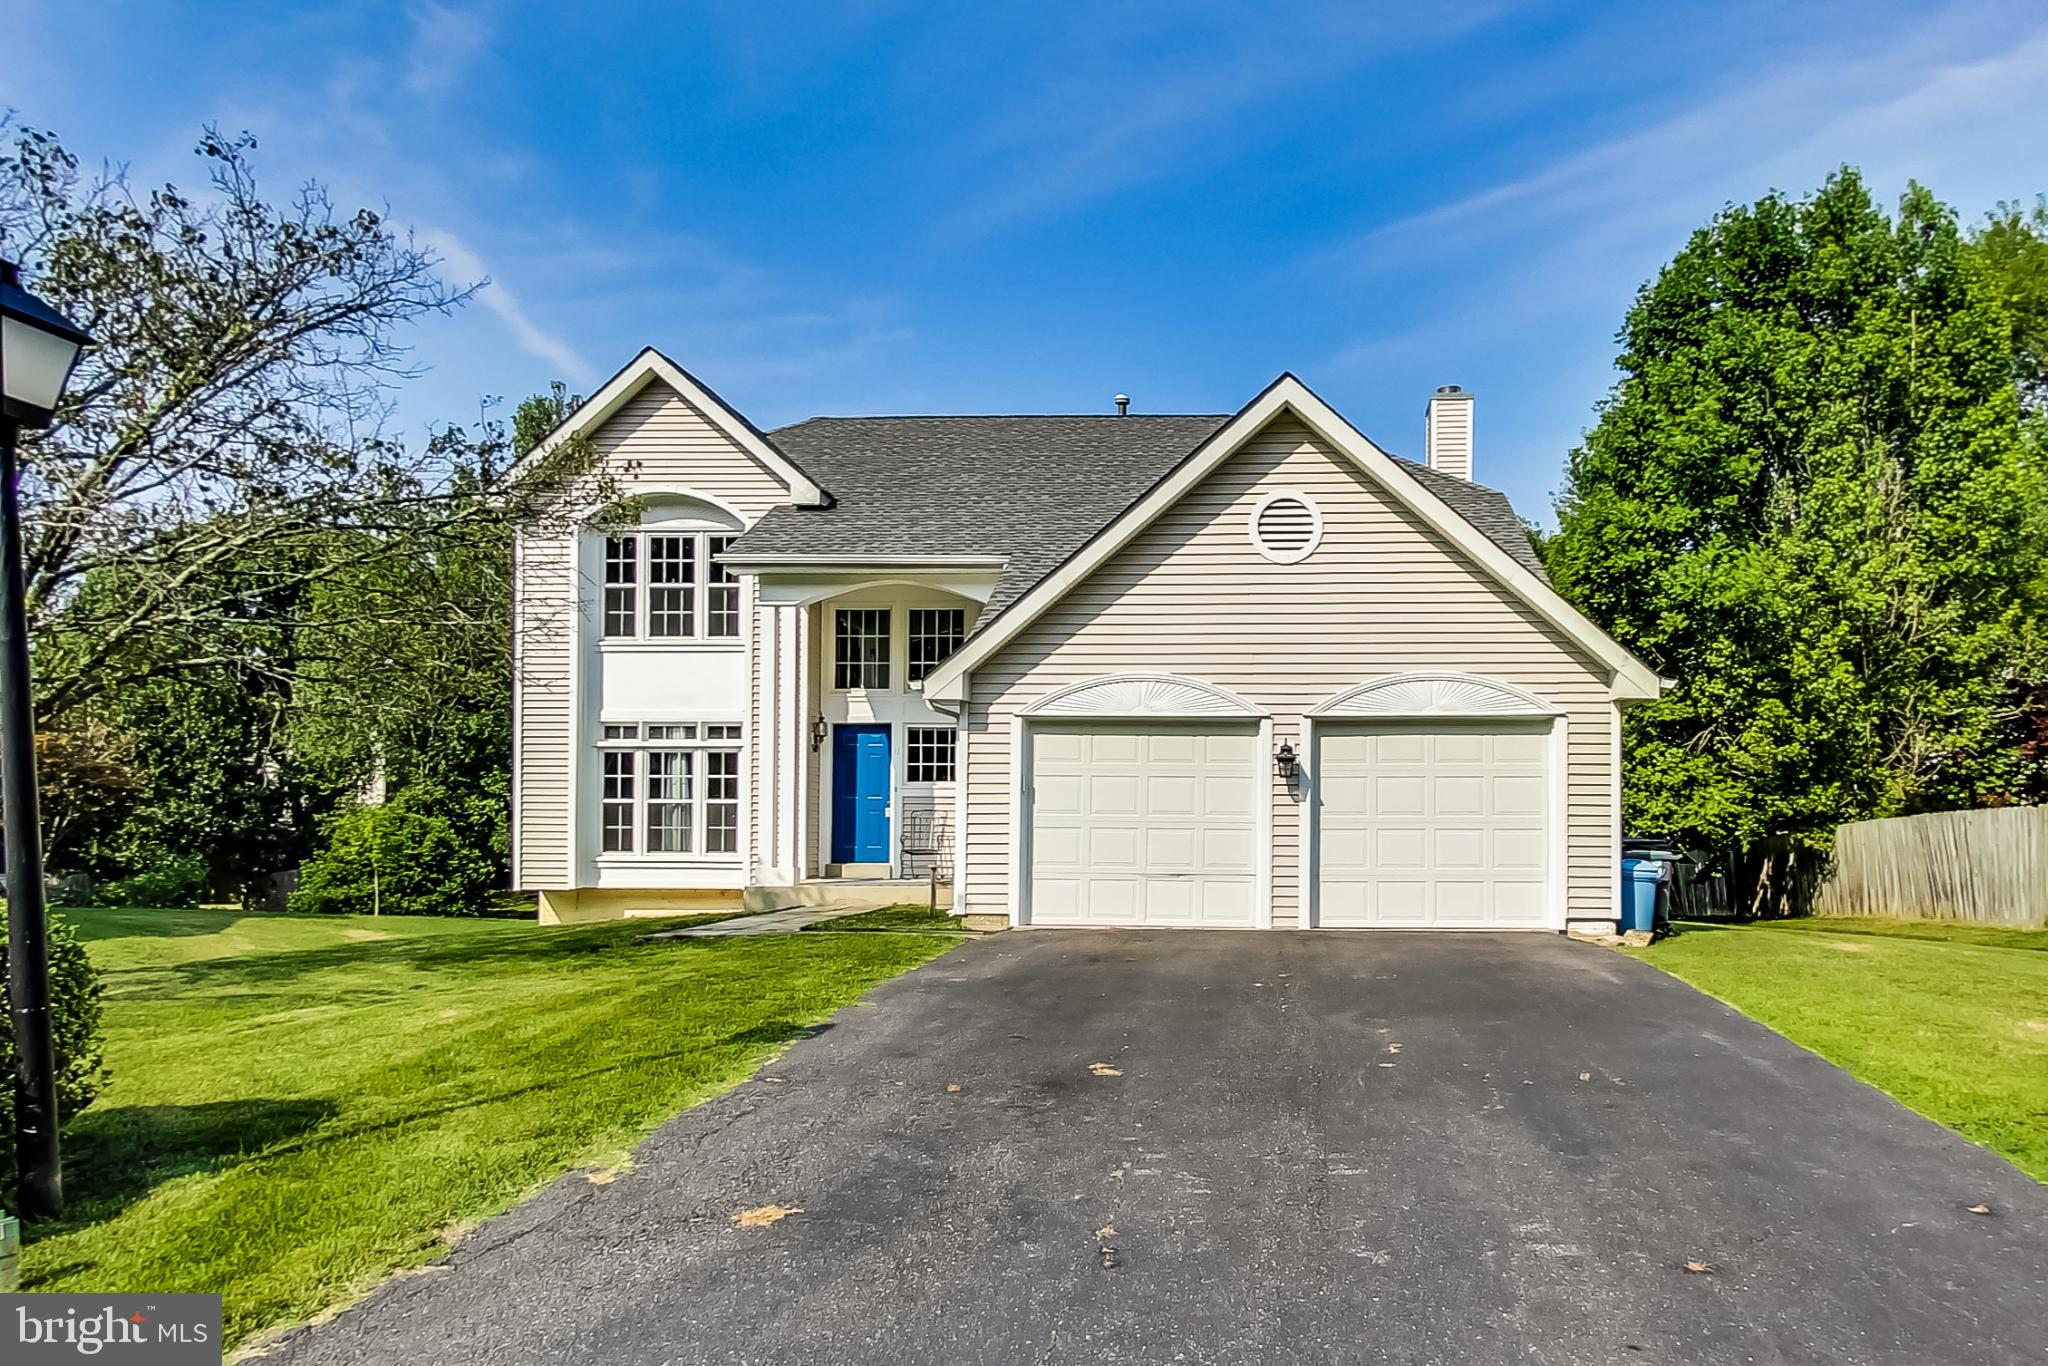 You will enjoy this beautiful home in an amazing location! This Colonial welcomes you into the two s